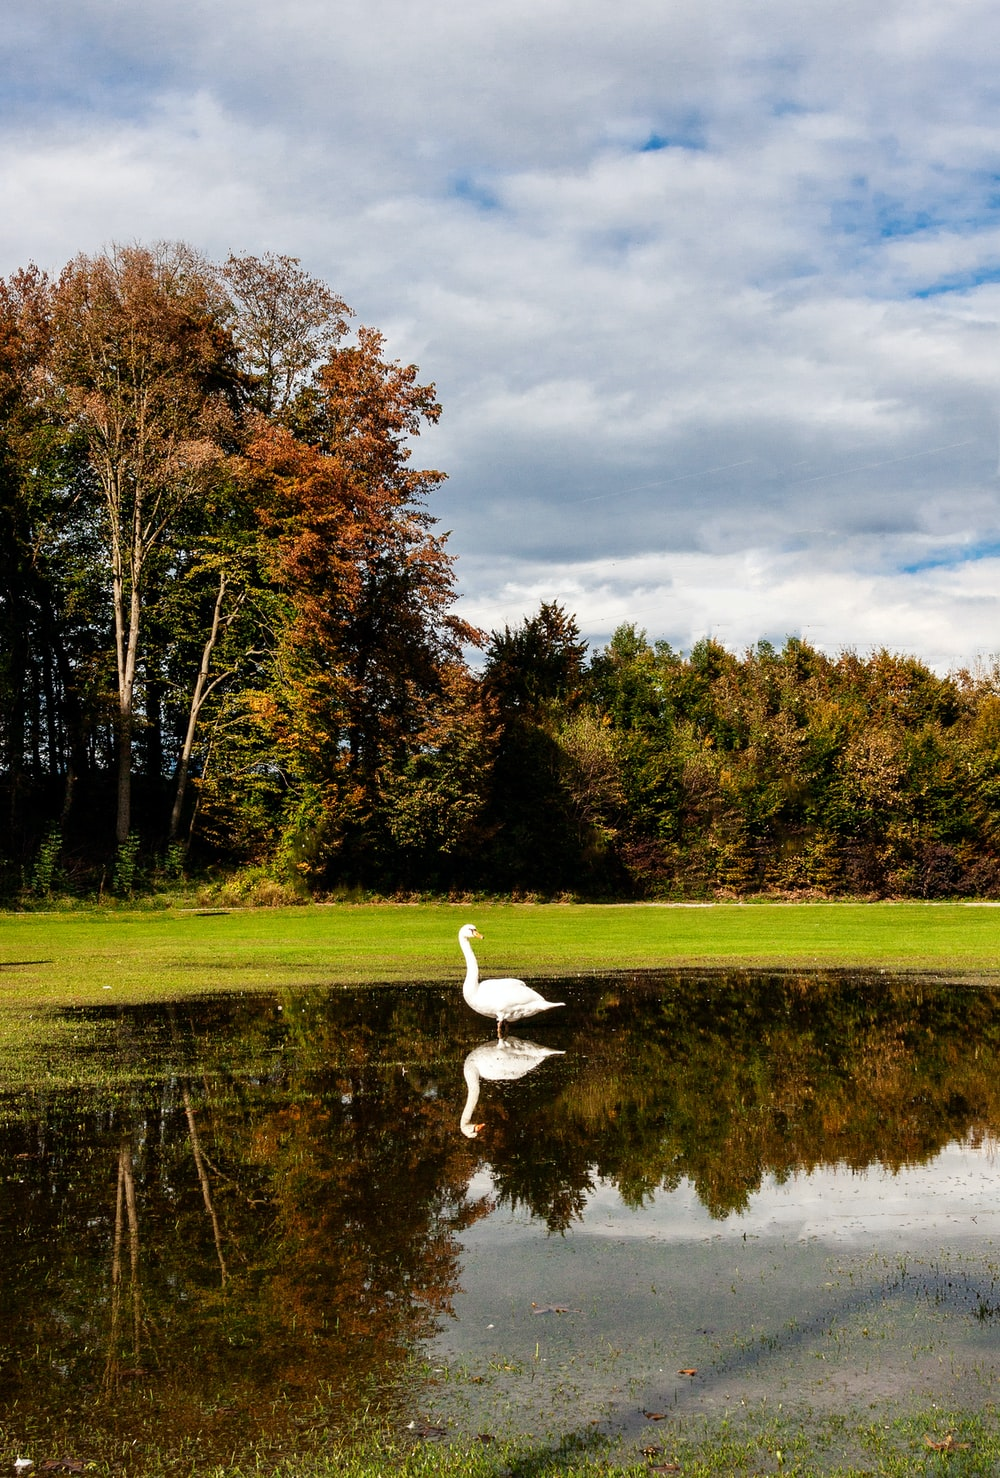 white swan on green grass field near lake under cloudy sky during daytime